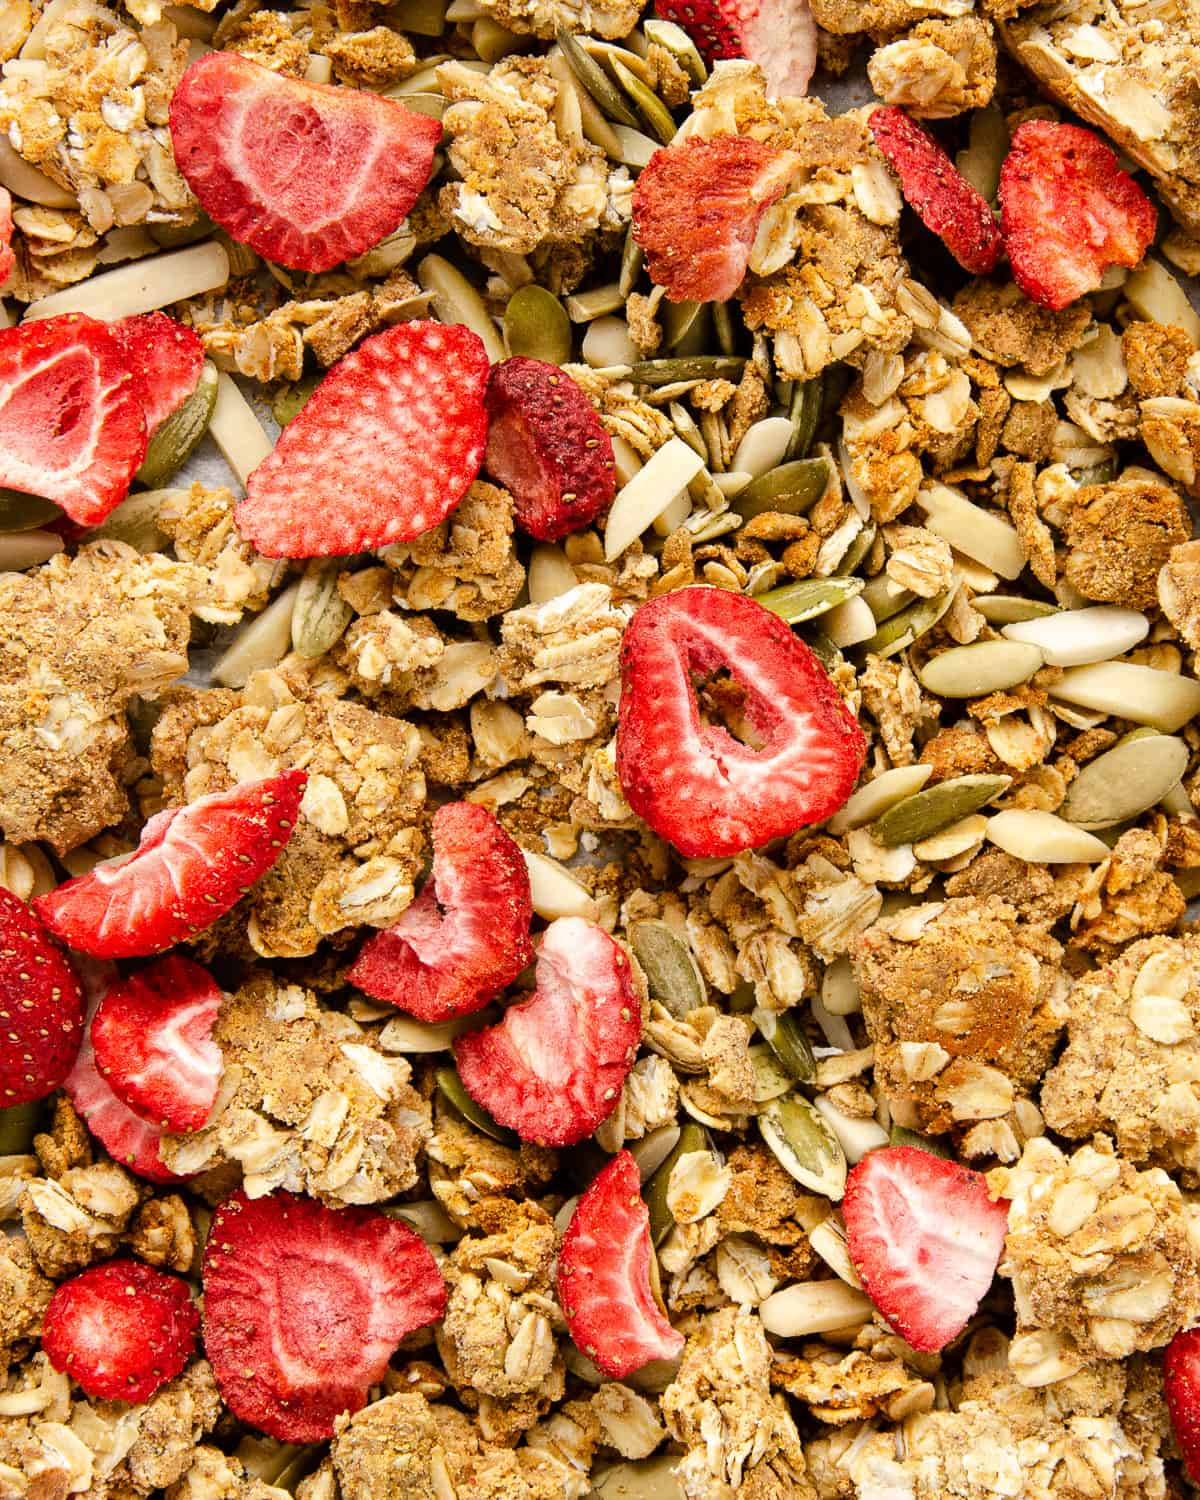 A close up view of granola with mix-in's of seeds, nuts and strawberries.